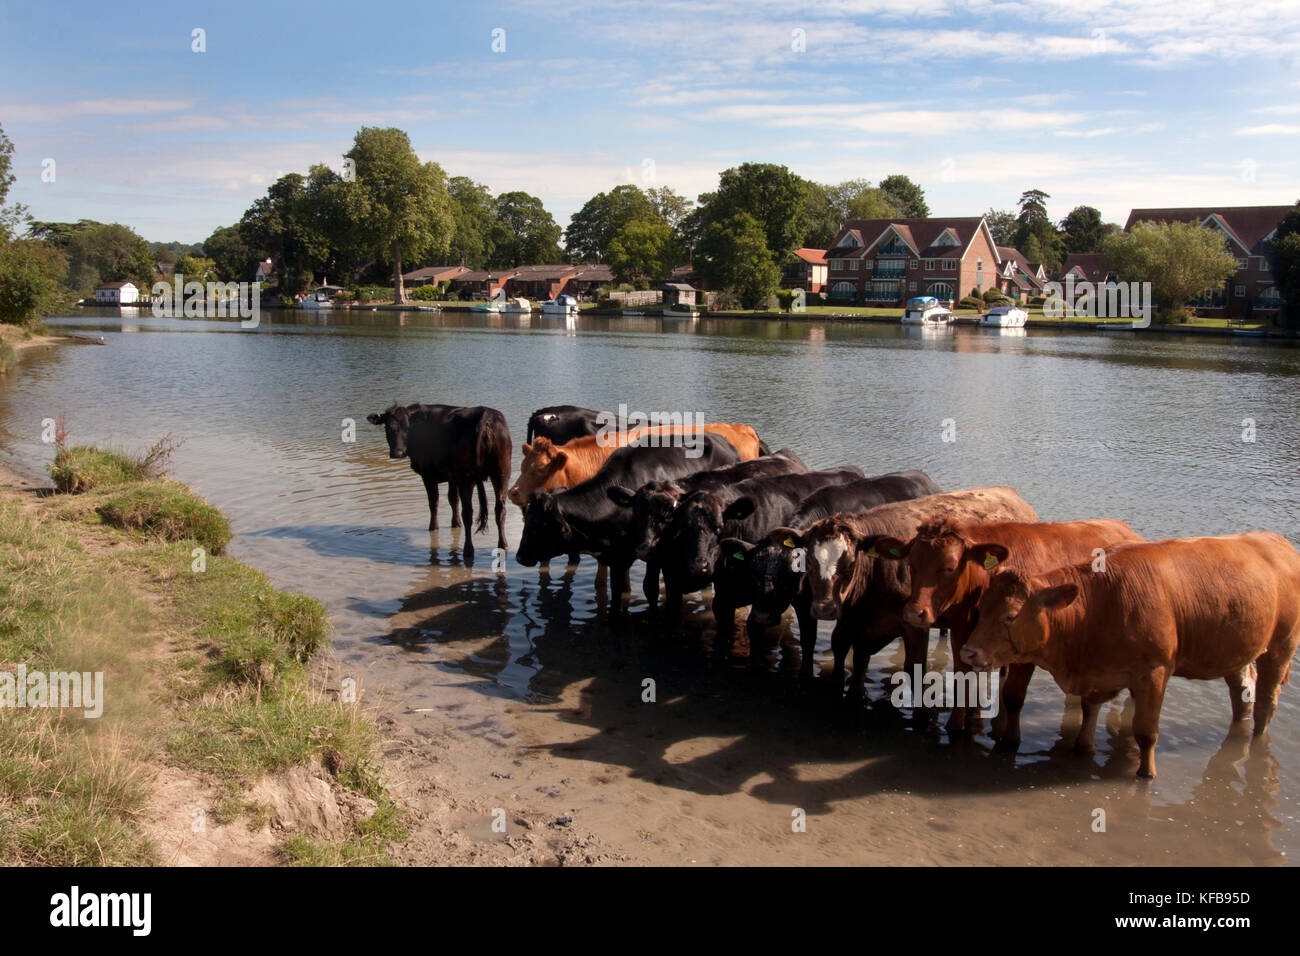 herd of cows bathing in the River Thames at Cookham near High Wycombe, Buckinghamshire, England - Stock Image